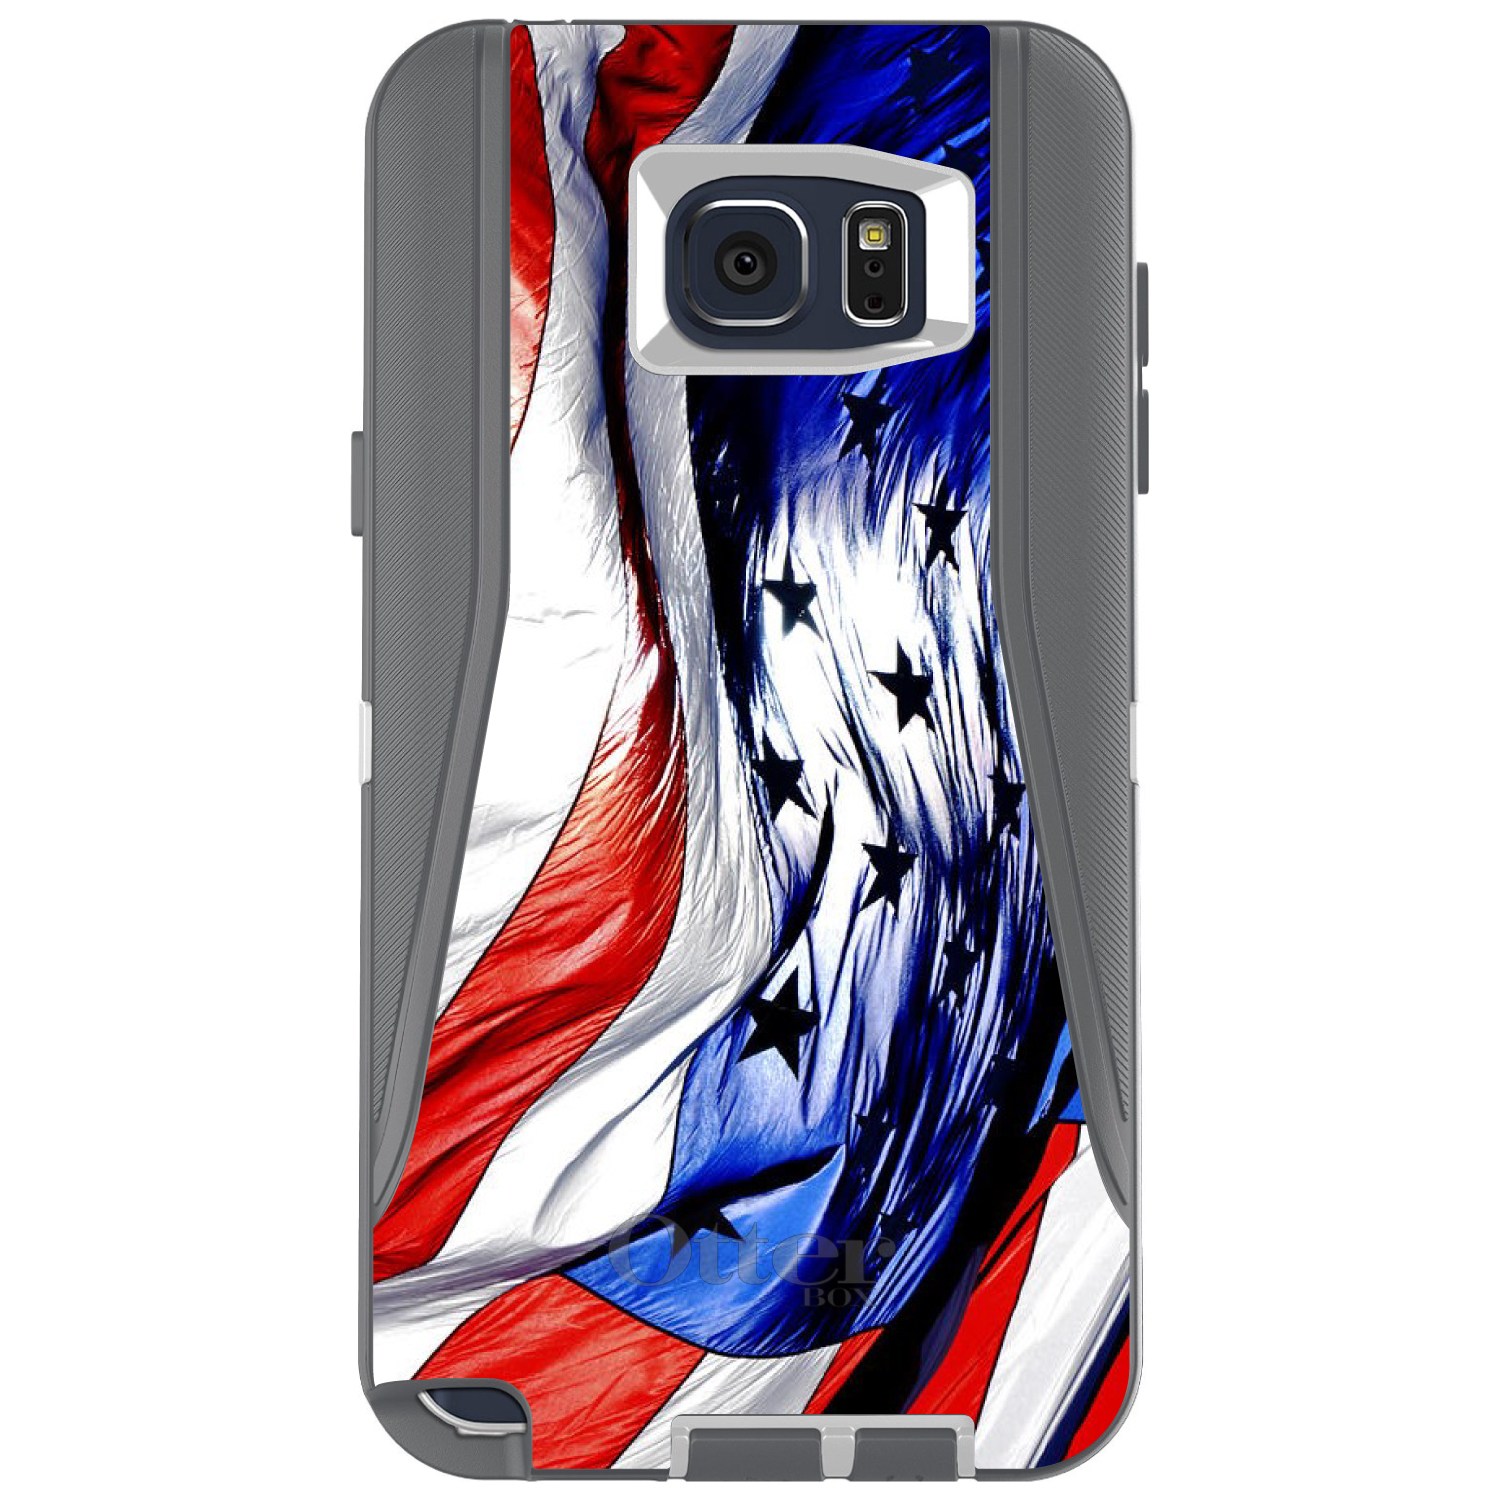 DistinctInk™ Custom Grey OtterBox Defender Series Case for Samsung Galaxy Note 5 - Red White Blue United States Flag Waving